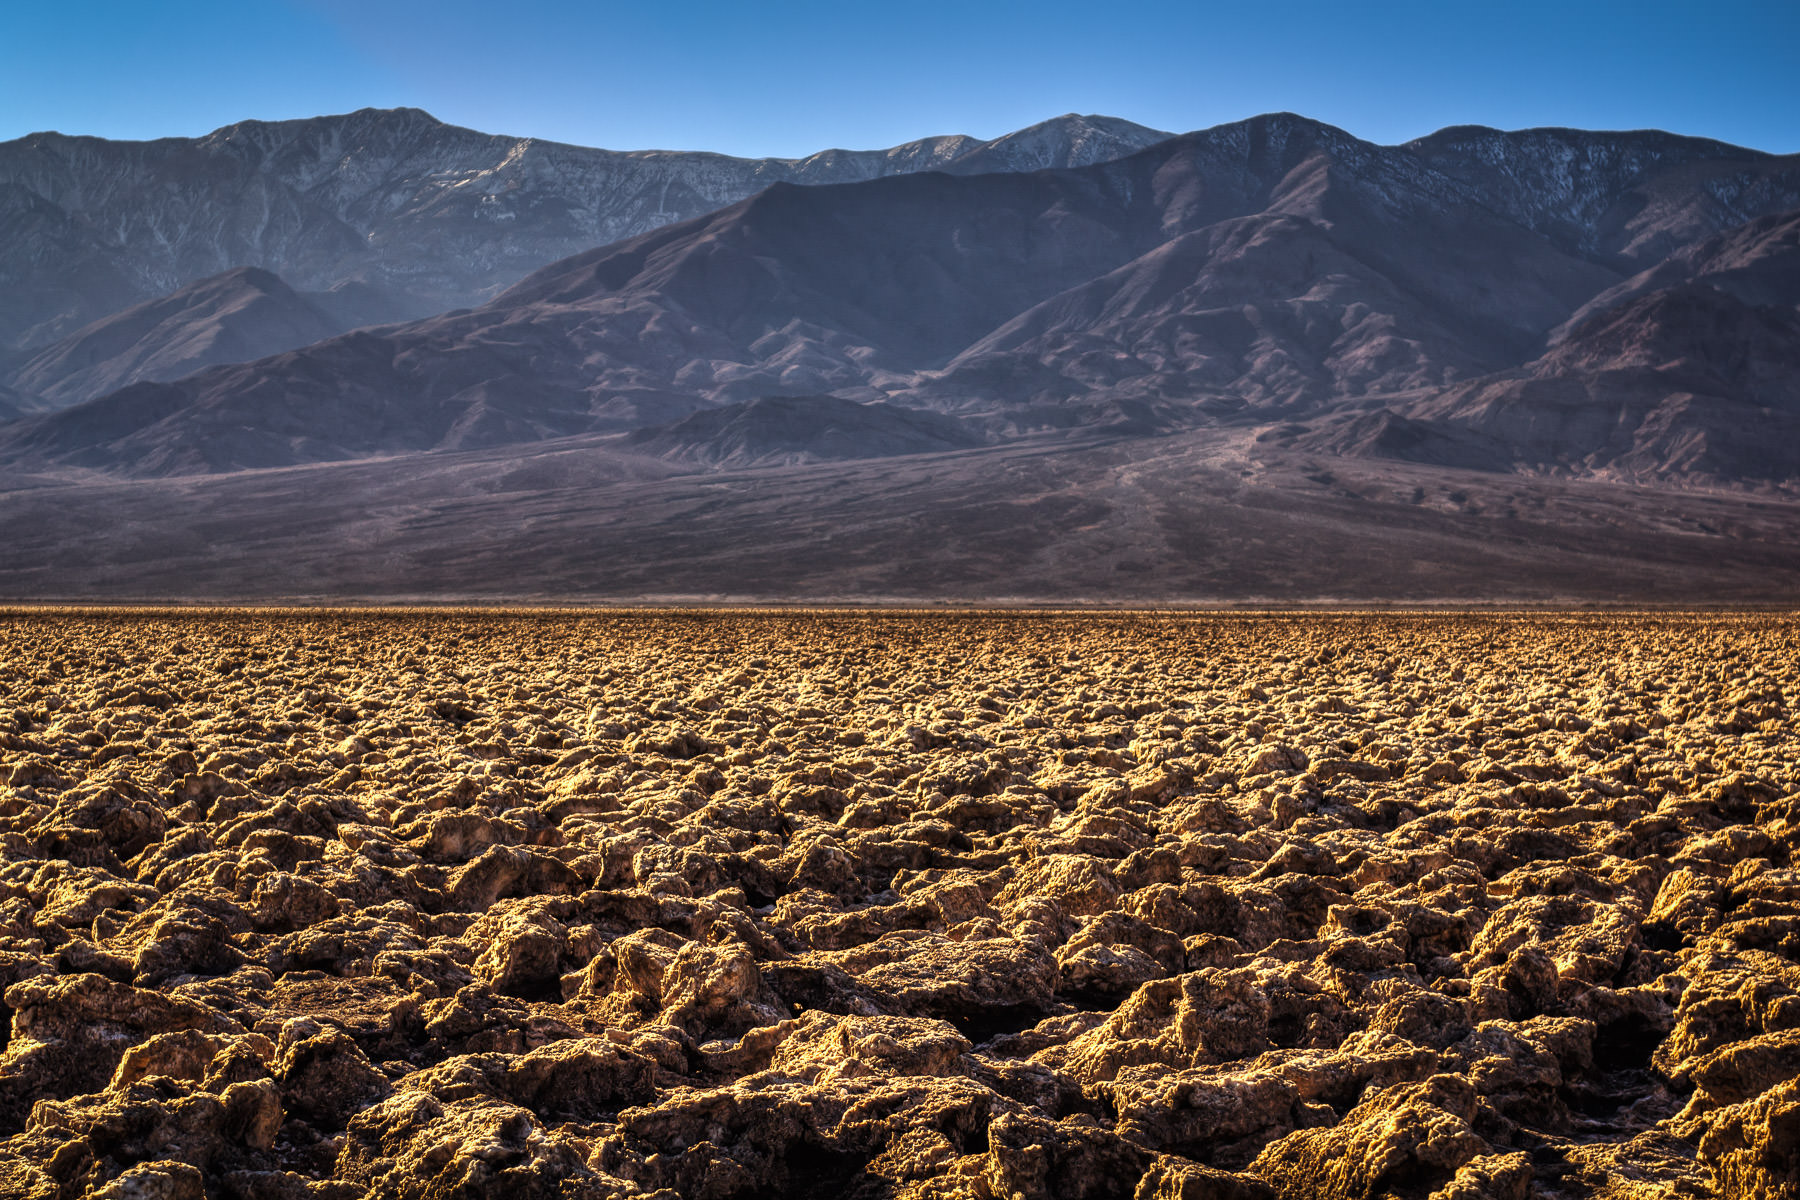 Large halite salt formations make up the rugged landscape of Death Valley National Park's Devil's Golf Course.